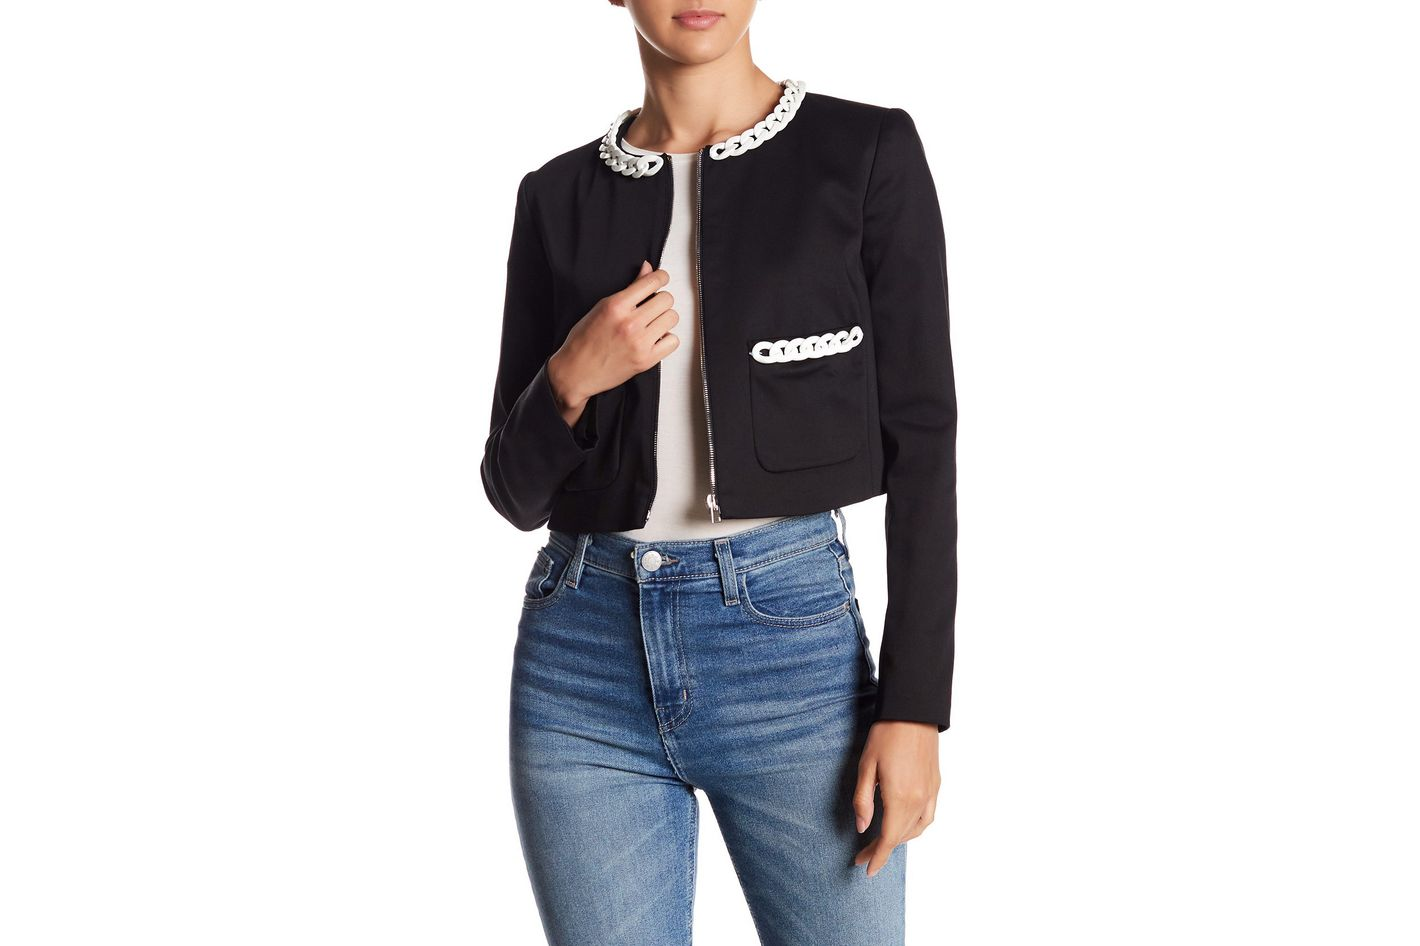 LOVE Moschino Cropped Chain Trim Jacket